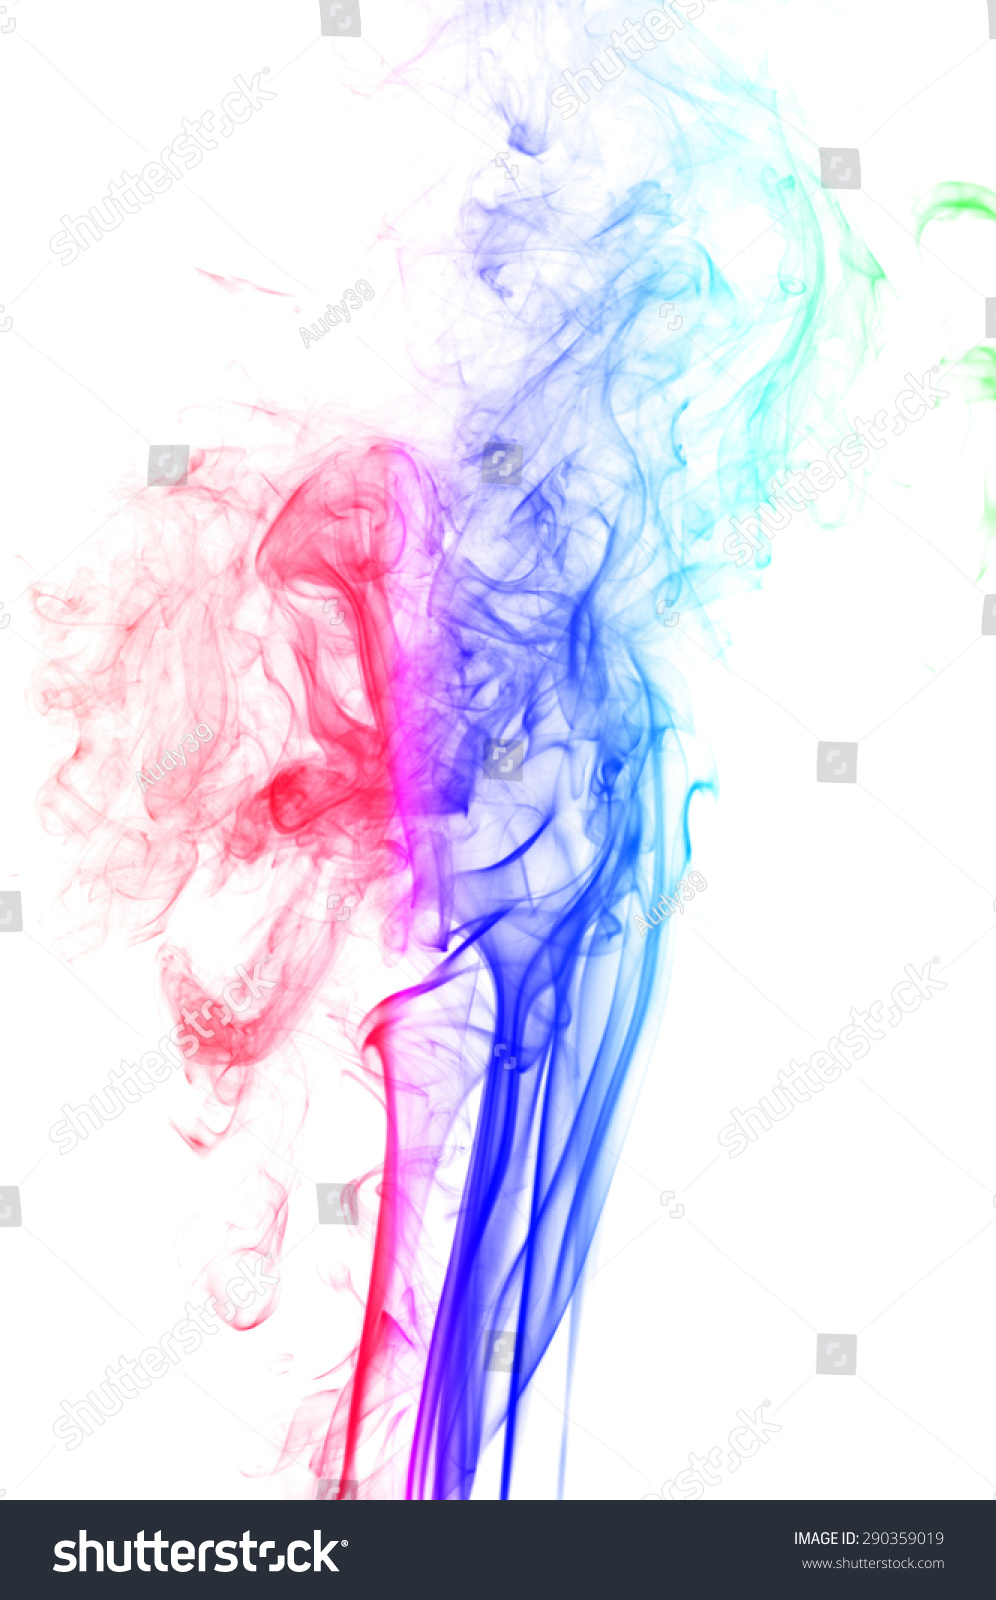 abstract colorful smoke on white background stock photo